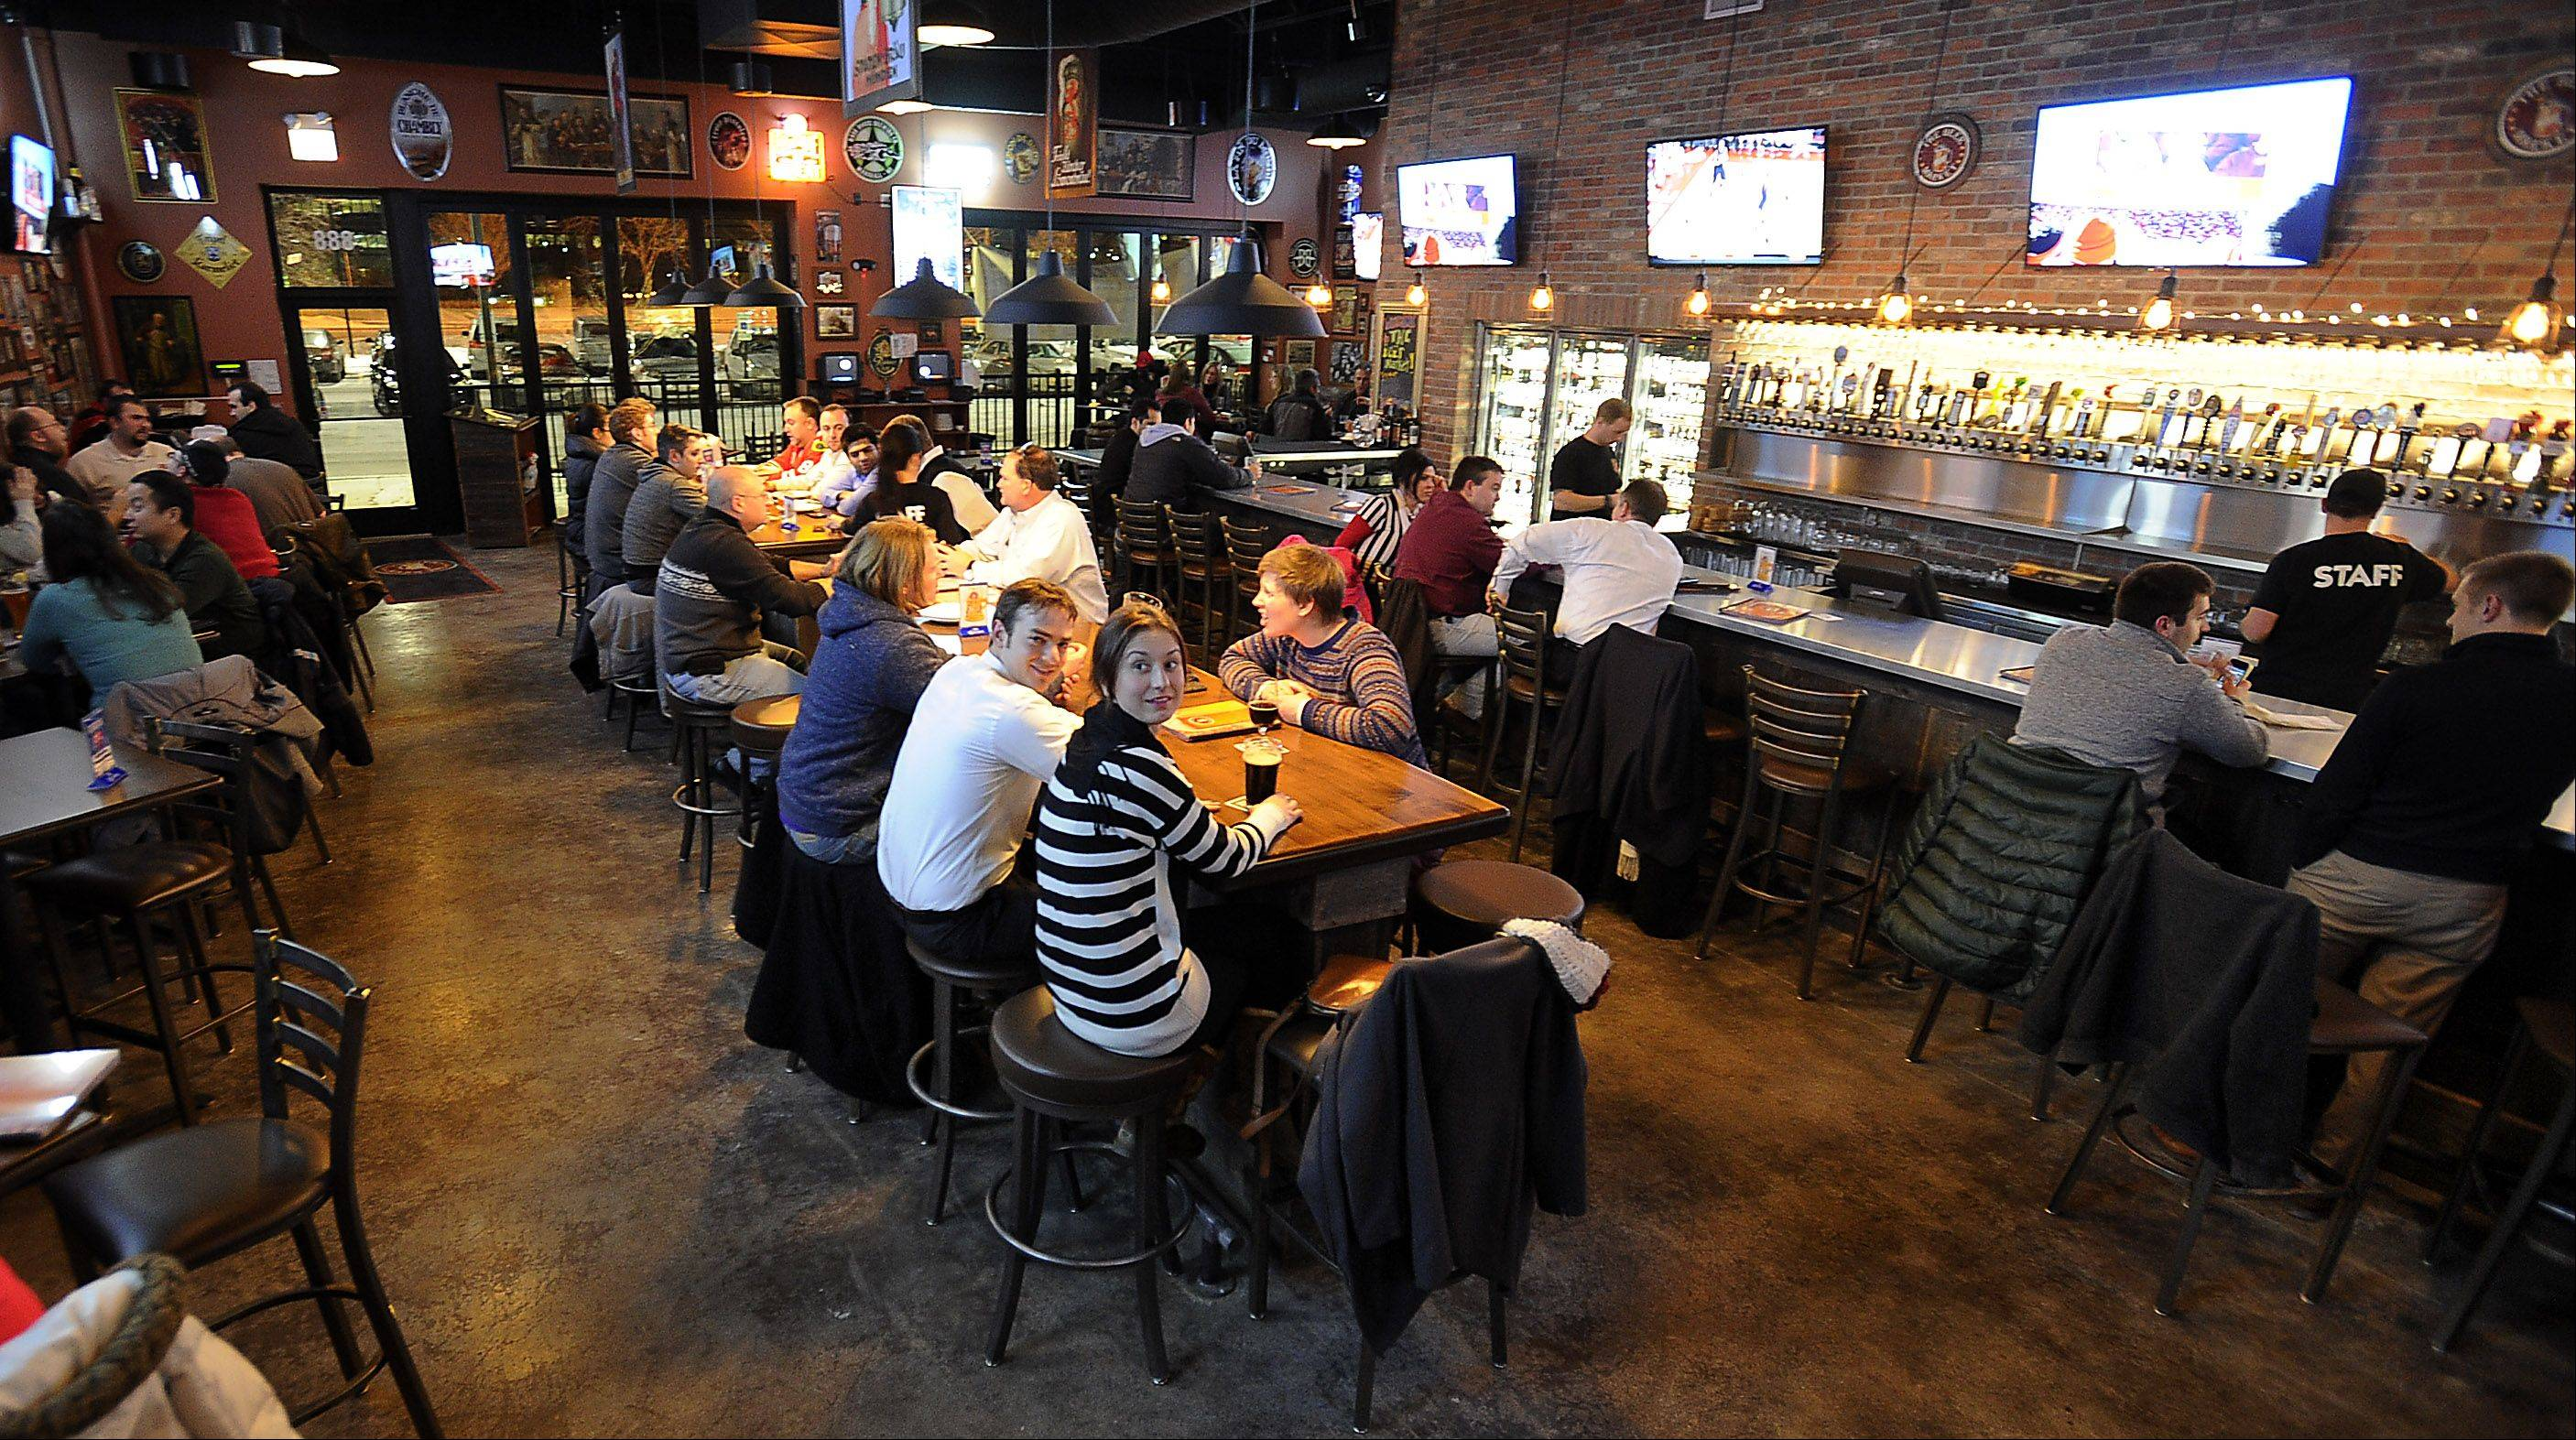 The Beer Market in Schaumburg fills up on game nights.